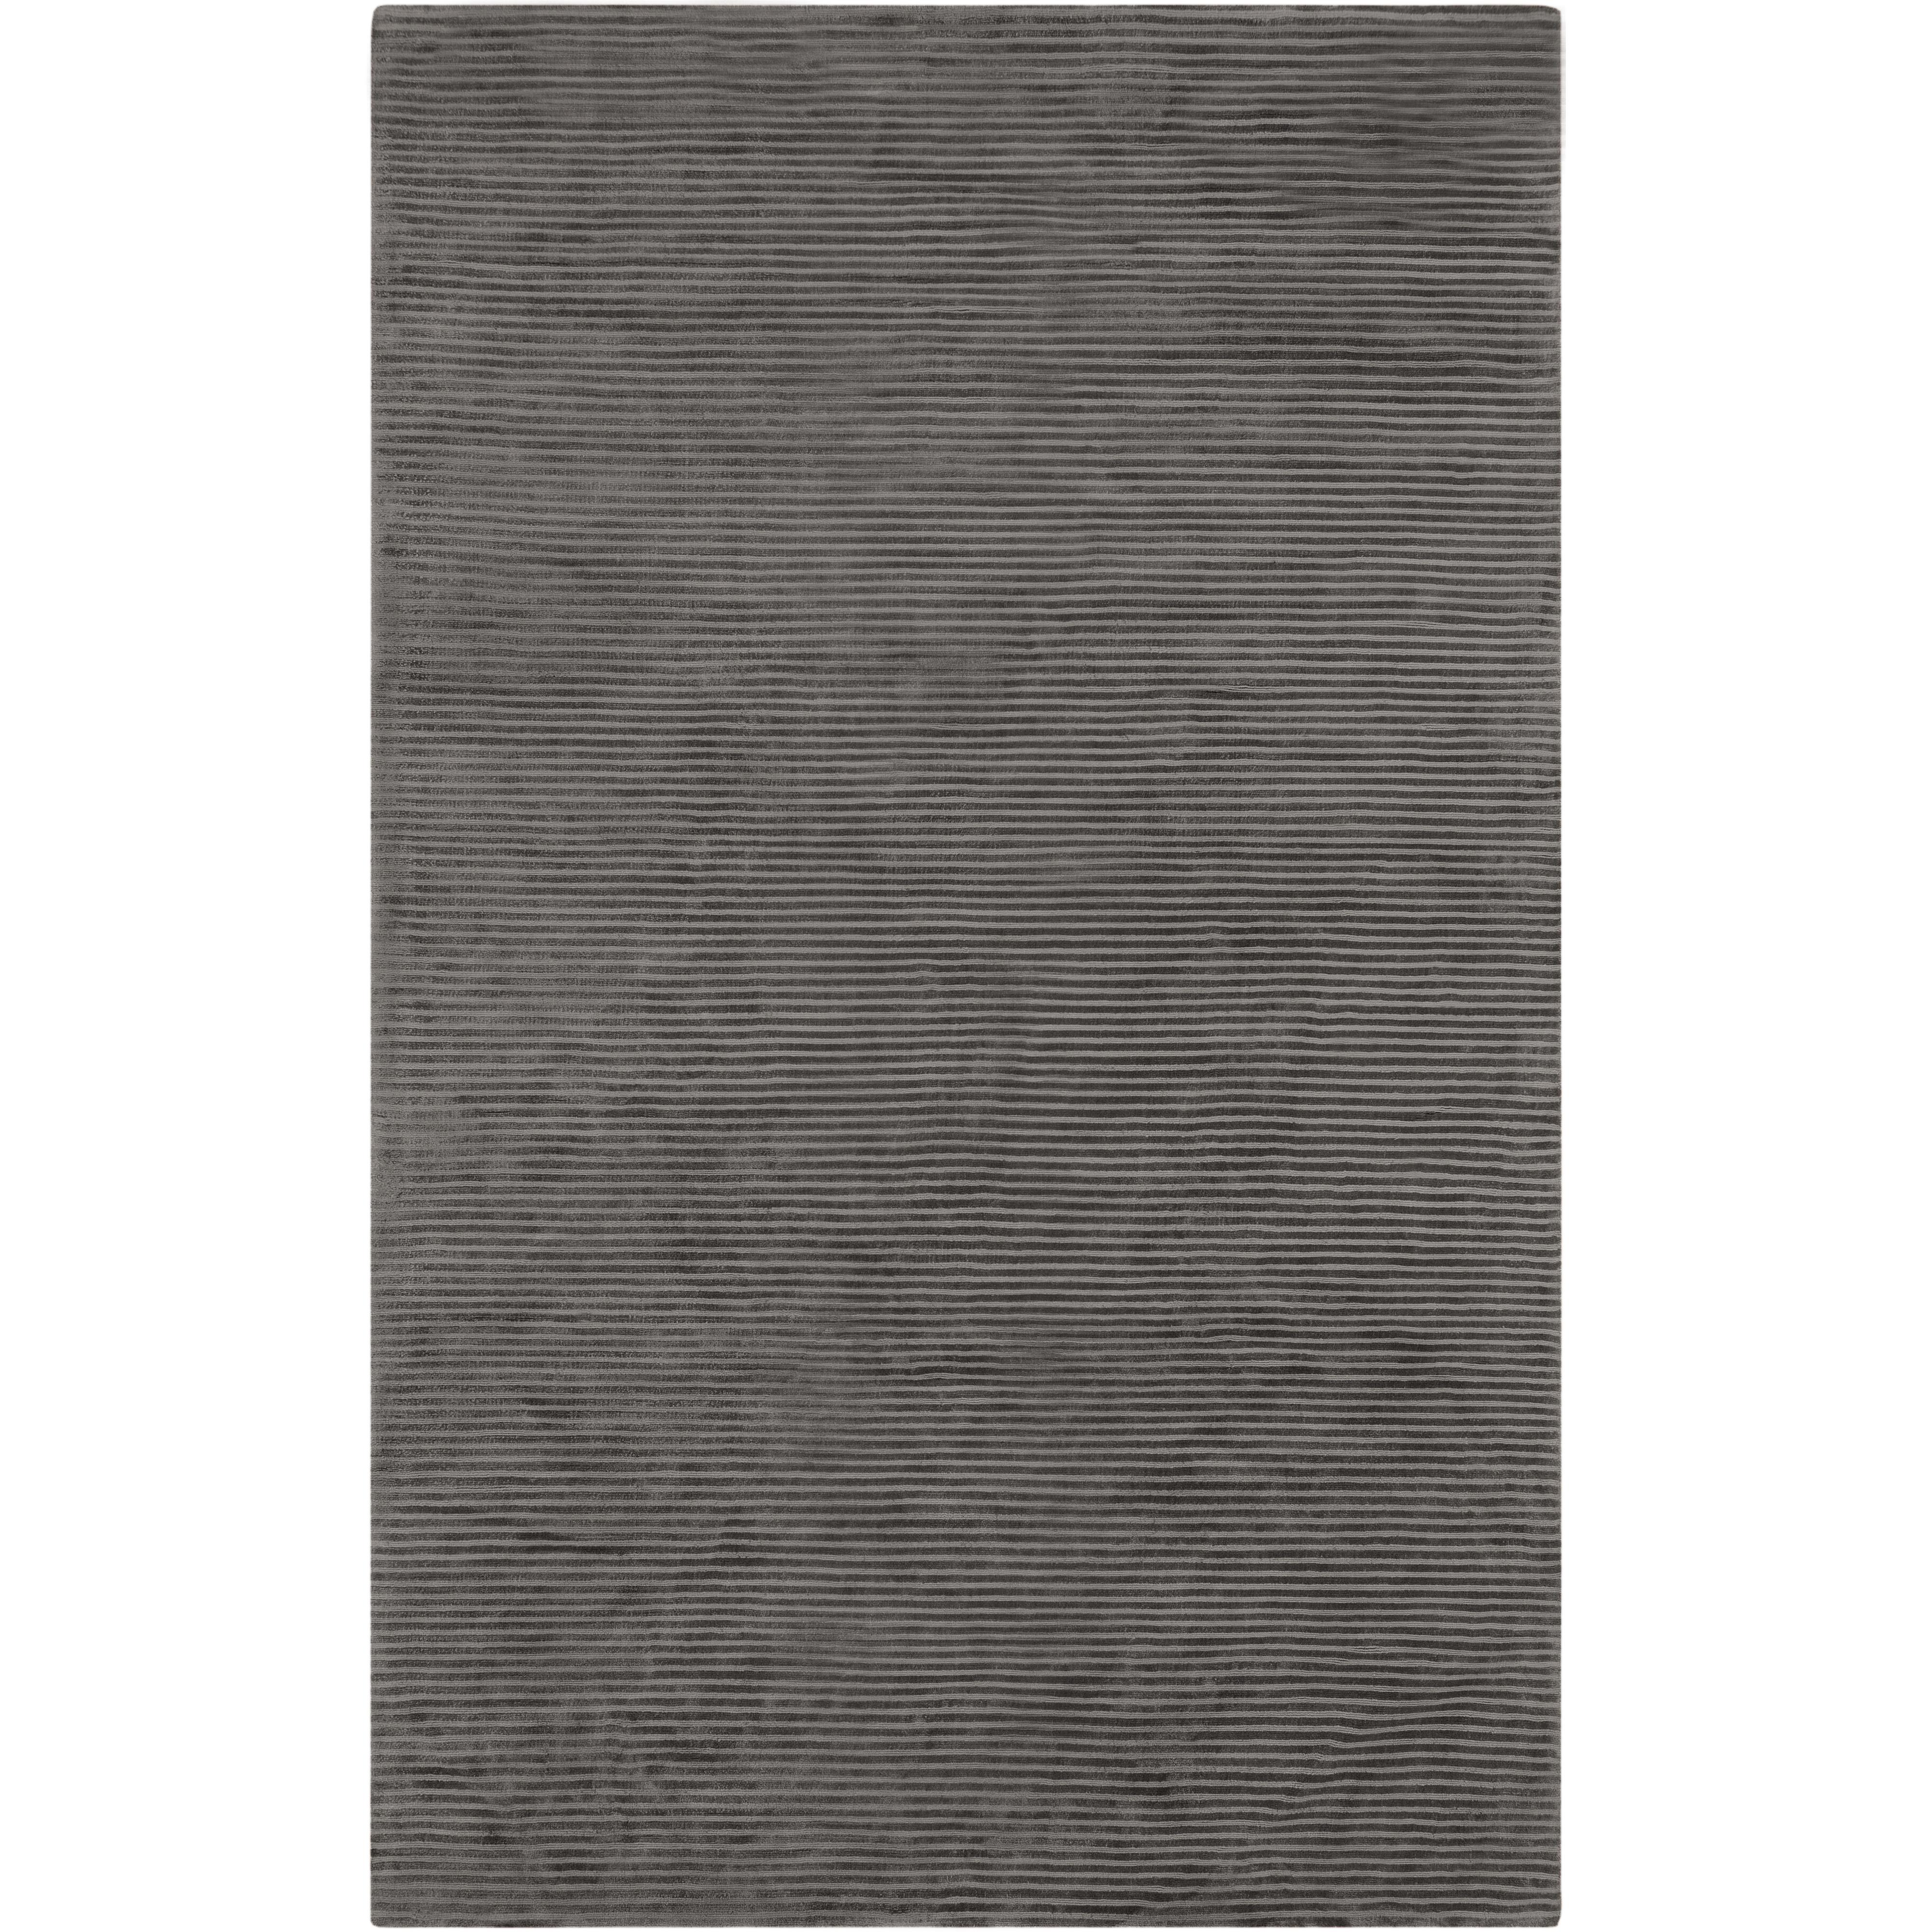 """Graphite 3'3"""" x 5'3"""" by 9596 at Becker Furniture"""